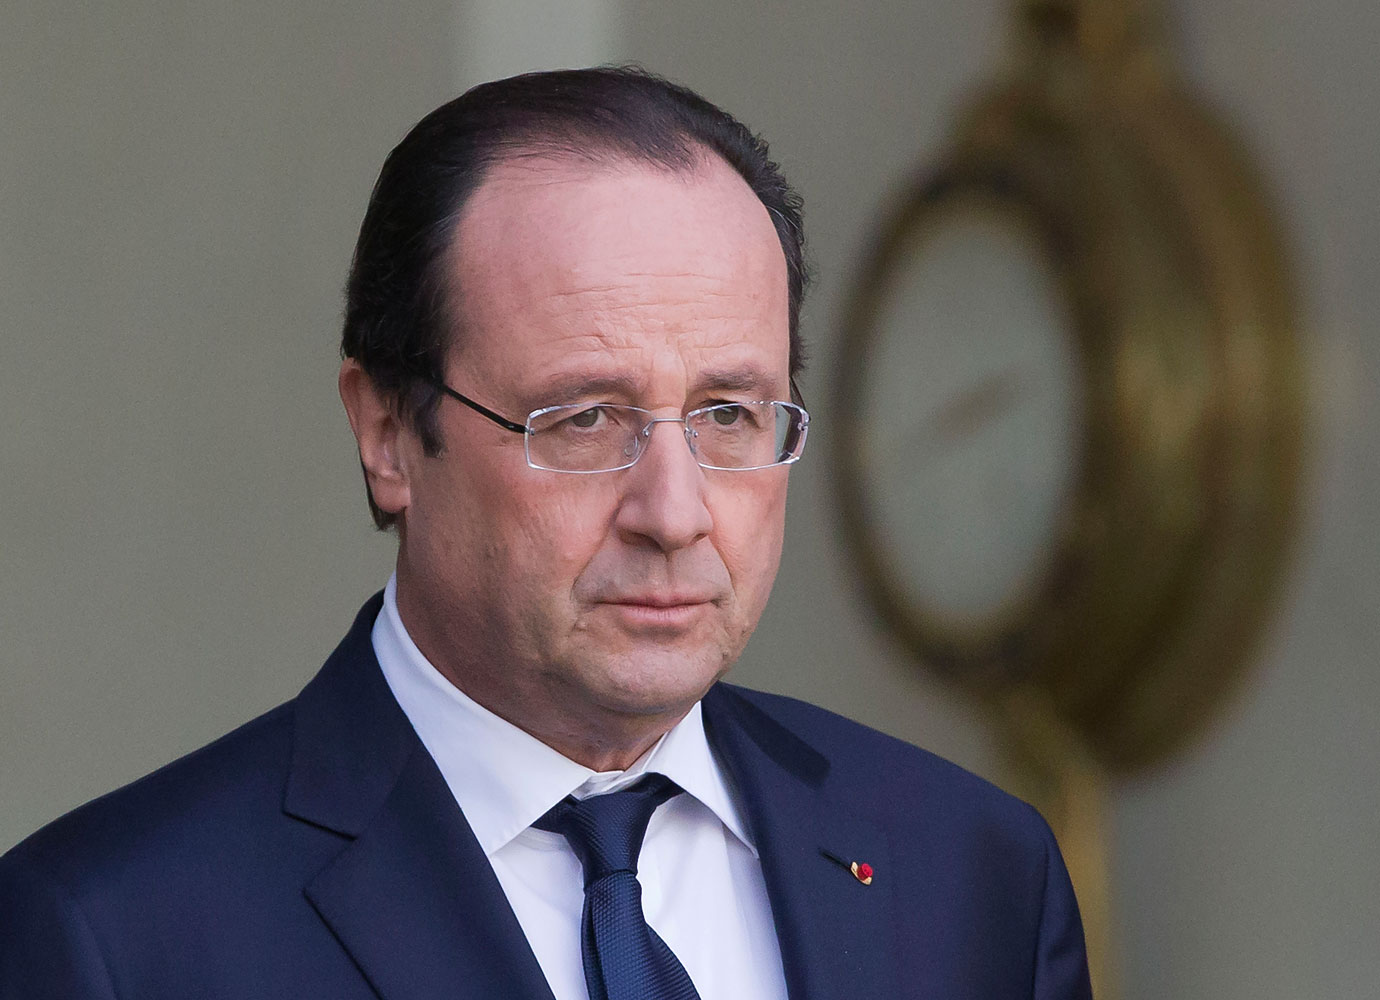 French President François Hollande at the Élysée Palace in Paris on Jan. 16, 2014.